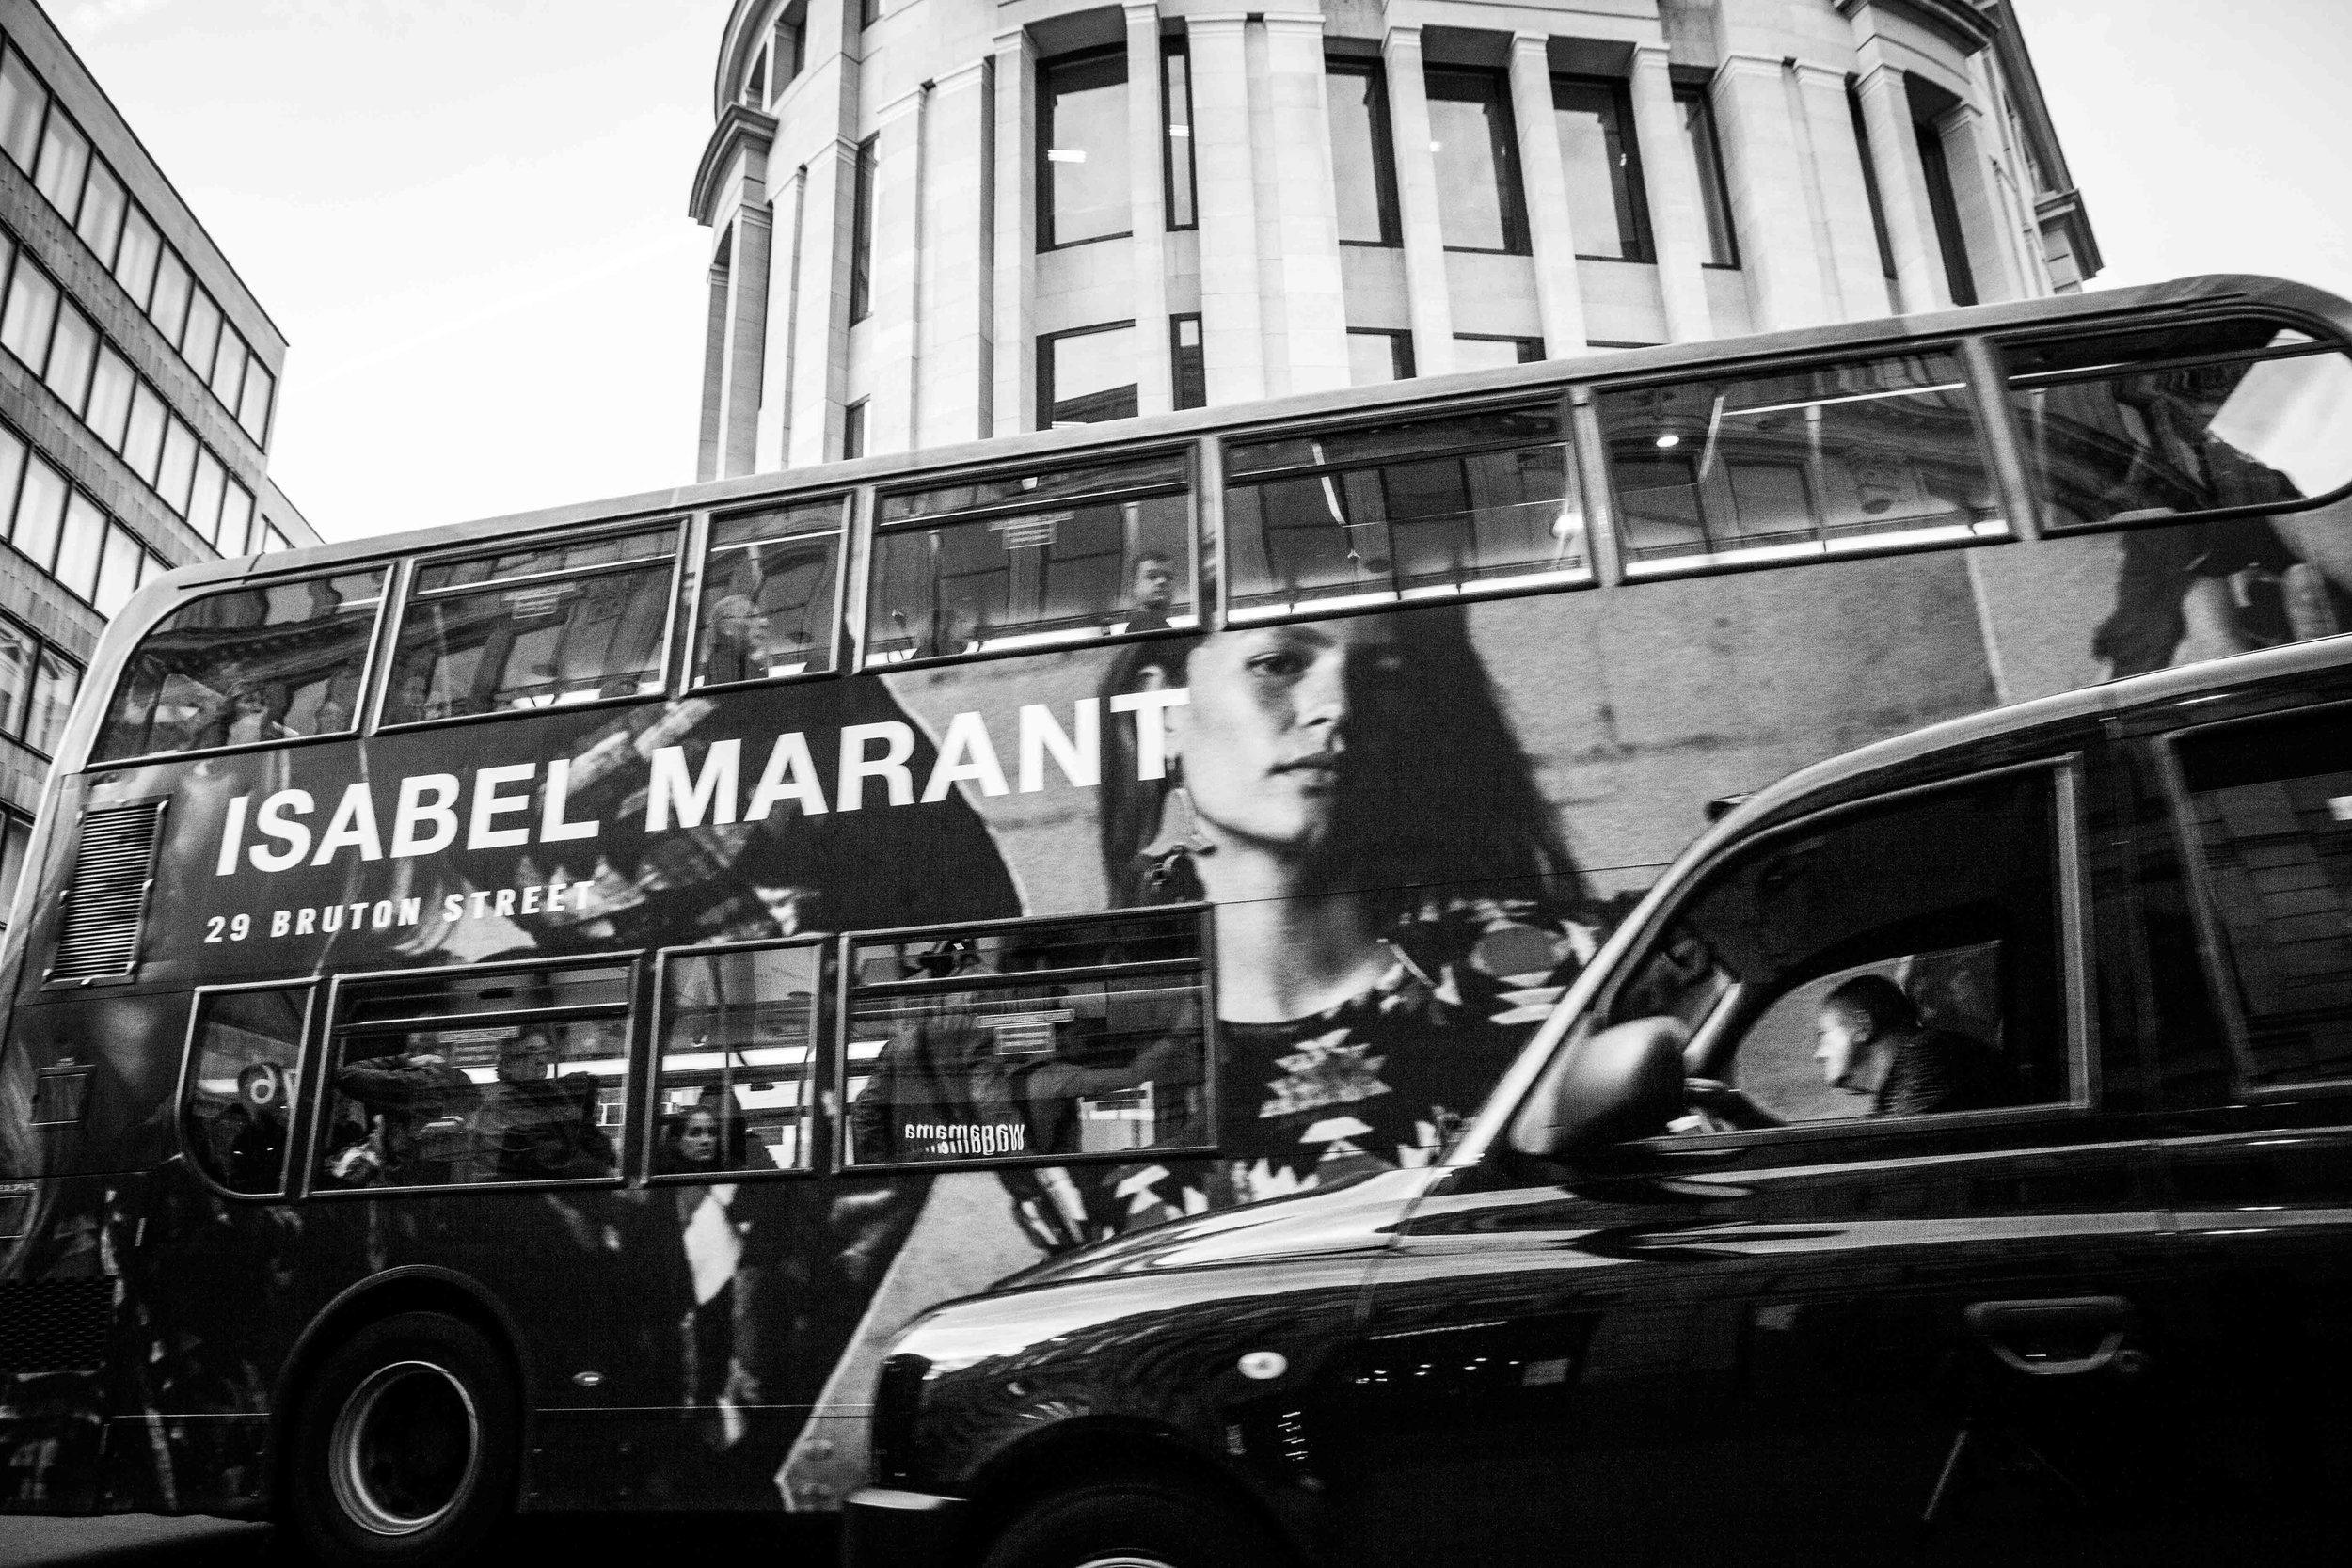 London Buses Campaign for Isabel Marant